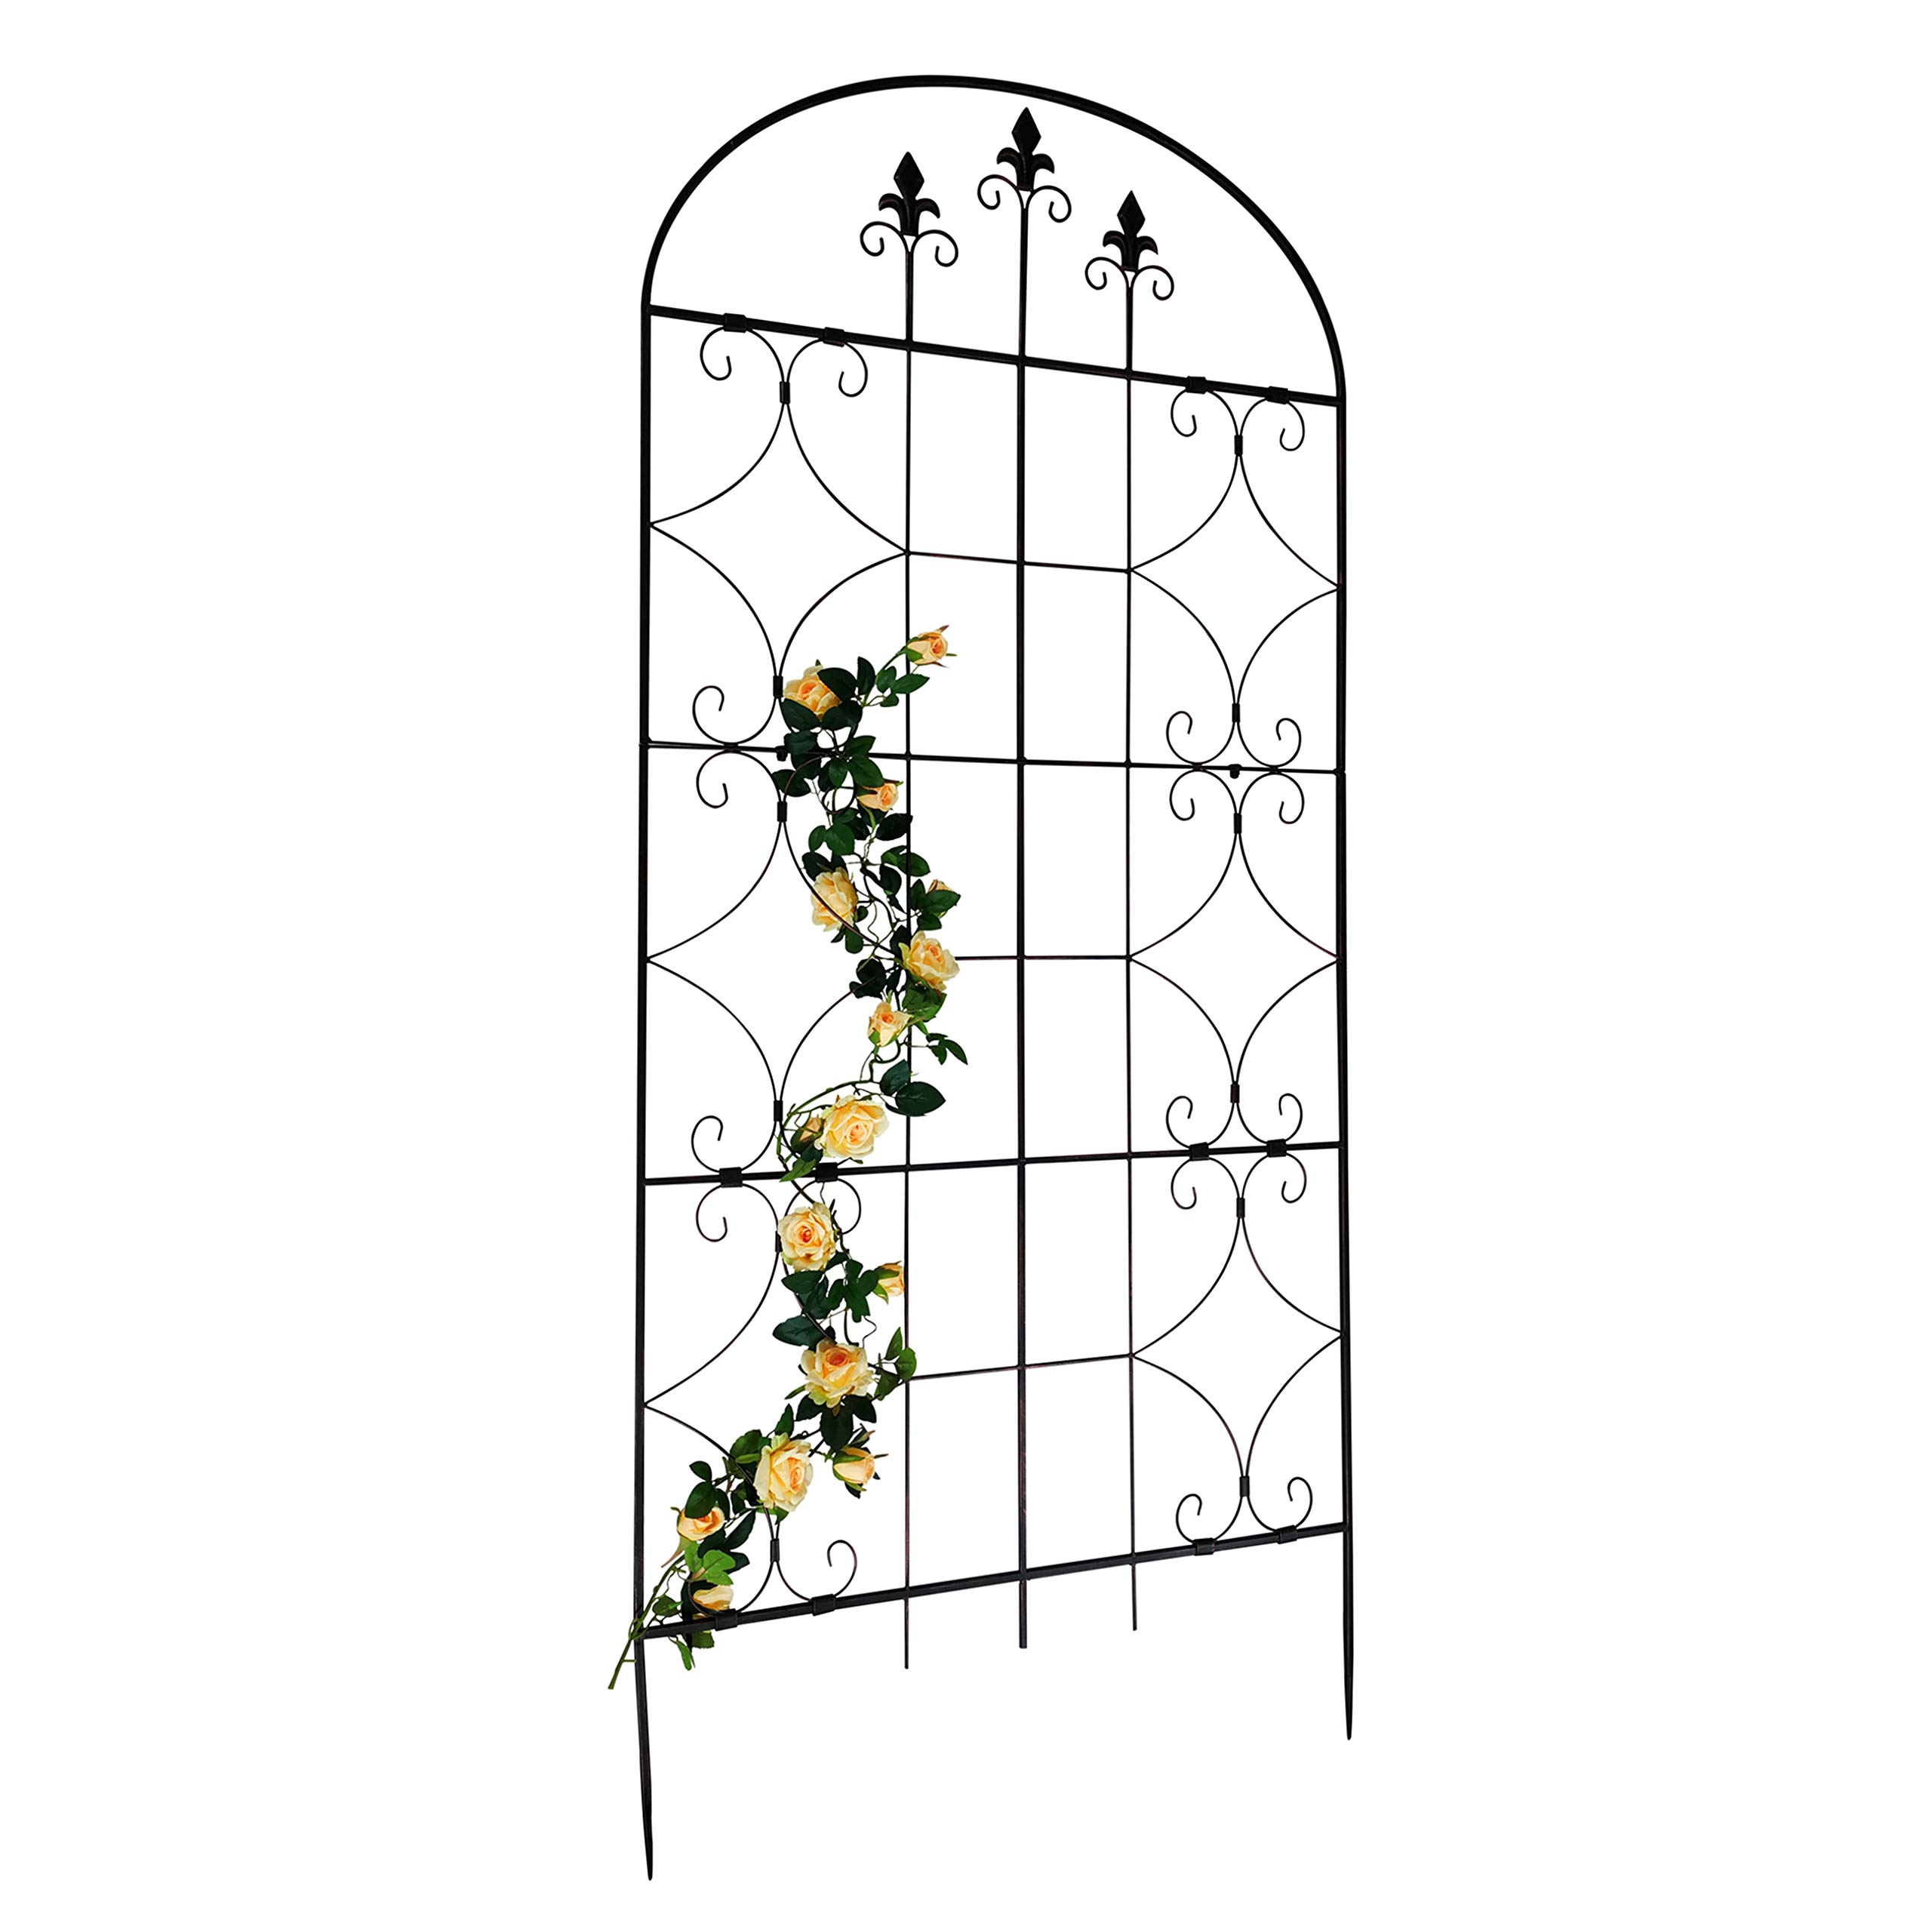 OUTOUR Garden Trellis Plant Support Wire Lattice Grid Panel Stake Fence, 64''x28'', for Climbing Plants, Potted Vines Vegetables Vining Flowers Ivy Roses Clematis, Lawn Backyard Patio, Antique Bronze